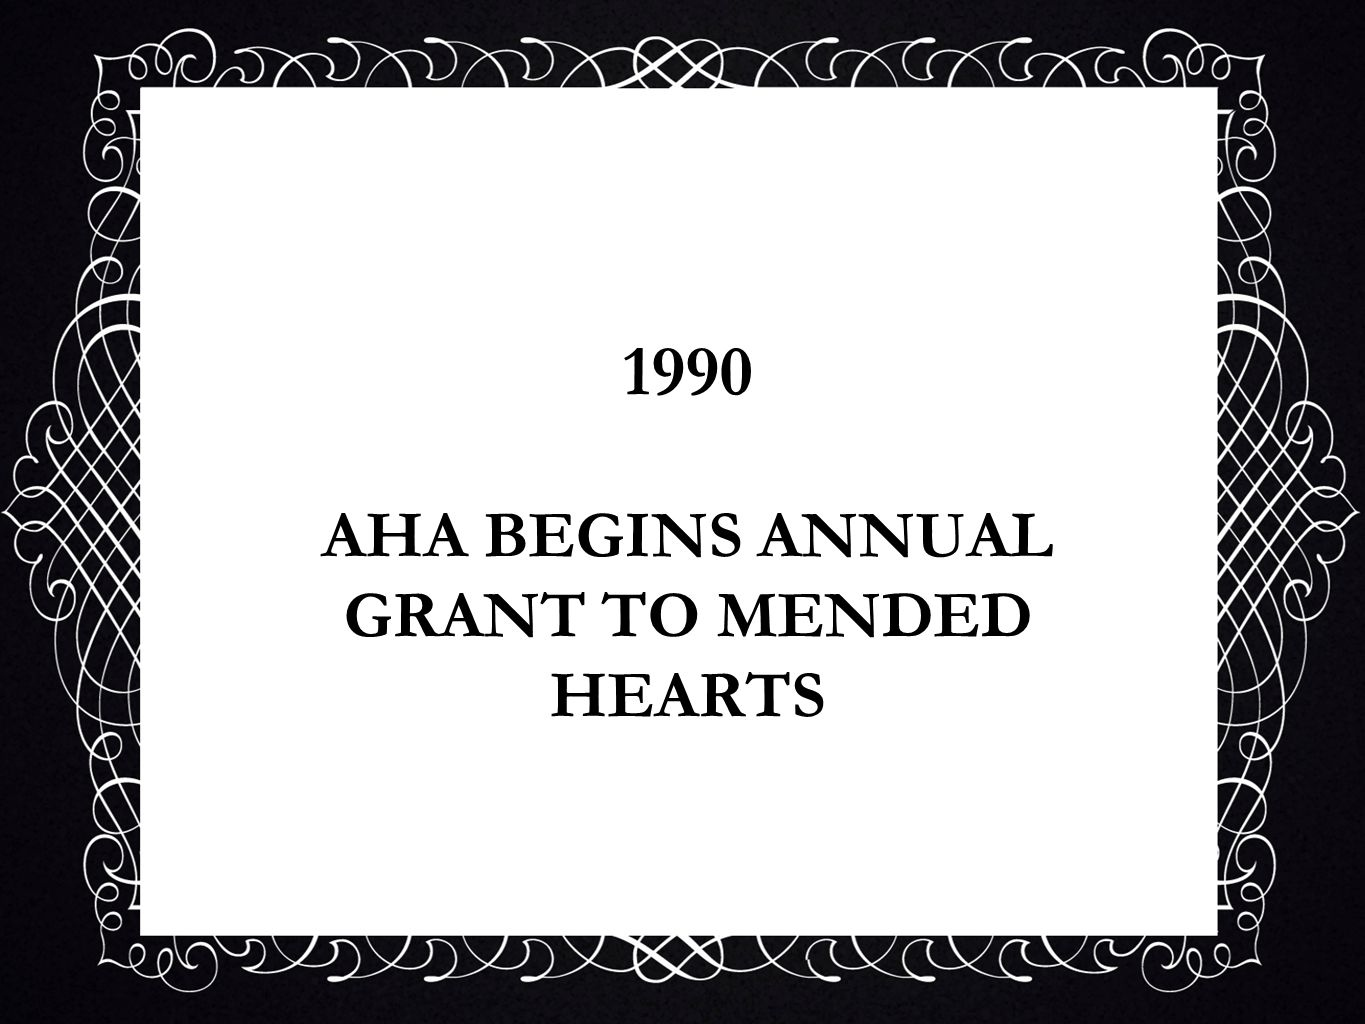 1990 AHA BEGINS ANNUAL GRANT TO MENDED HEARTS